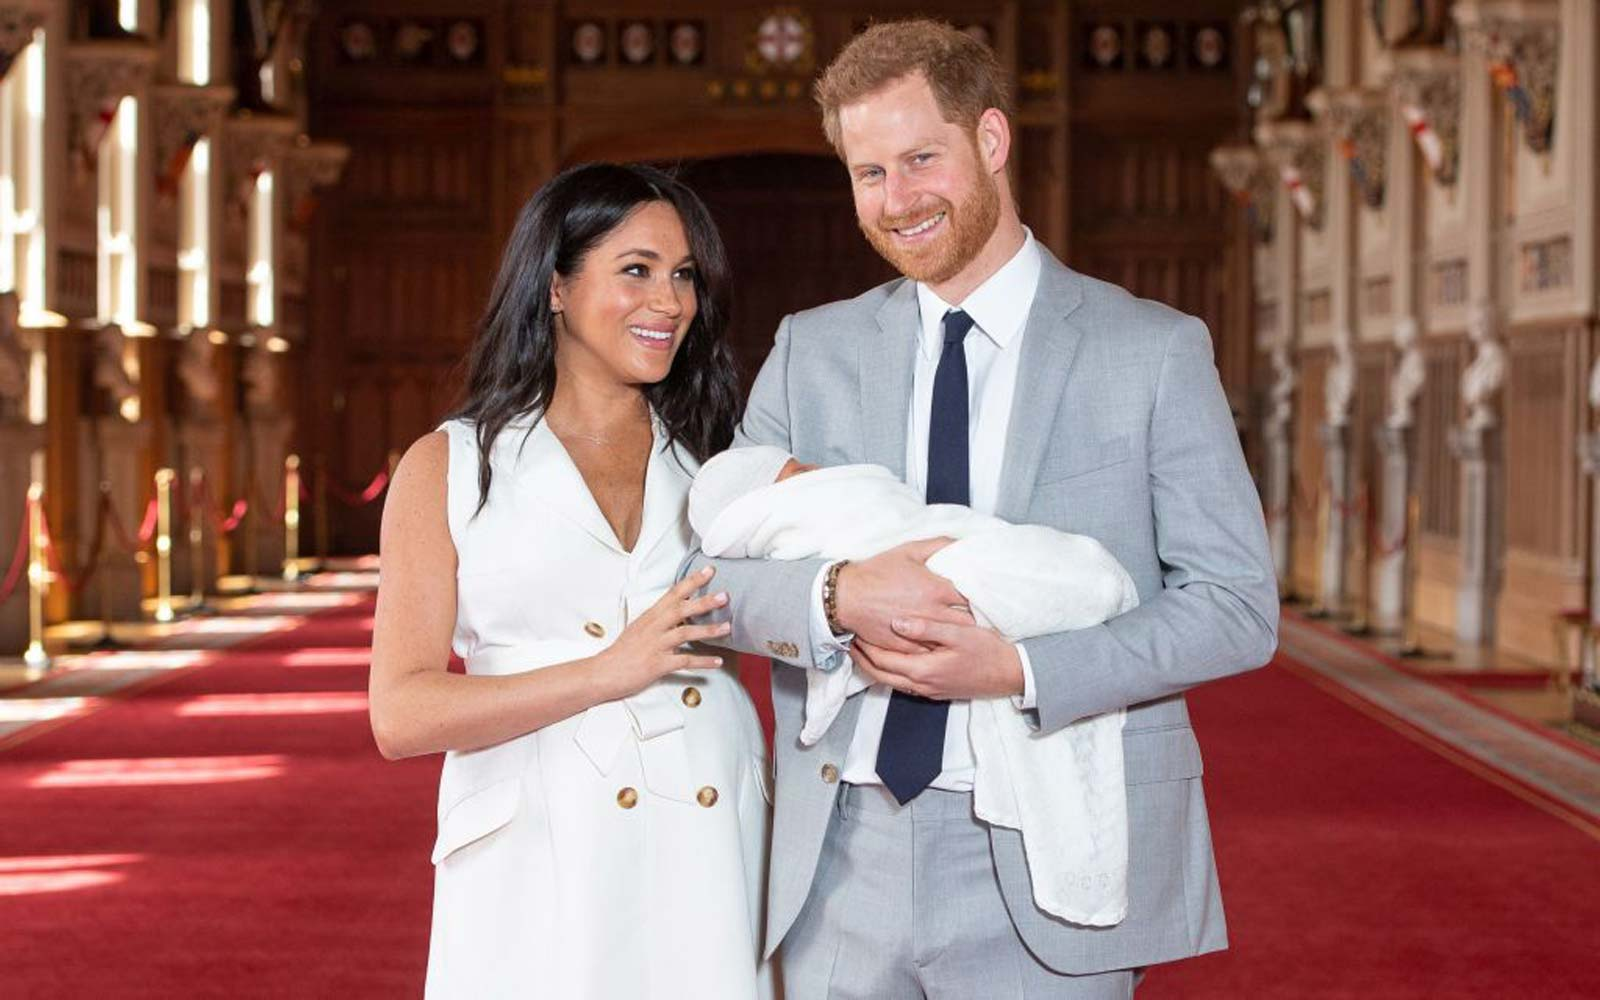 Meghan Markle and Prince Harry's New Home With Archie Is 'So Cute and Warm'Meghan Markle and Prince Harry's New Home With Archie Is 'So Cute and Warm